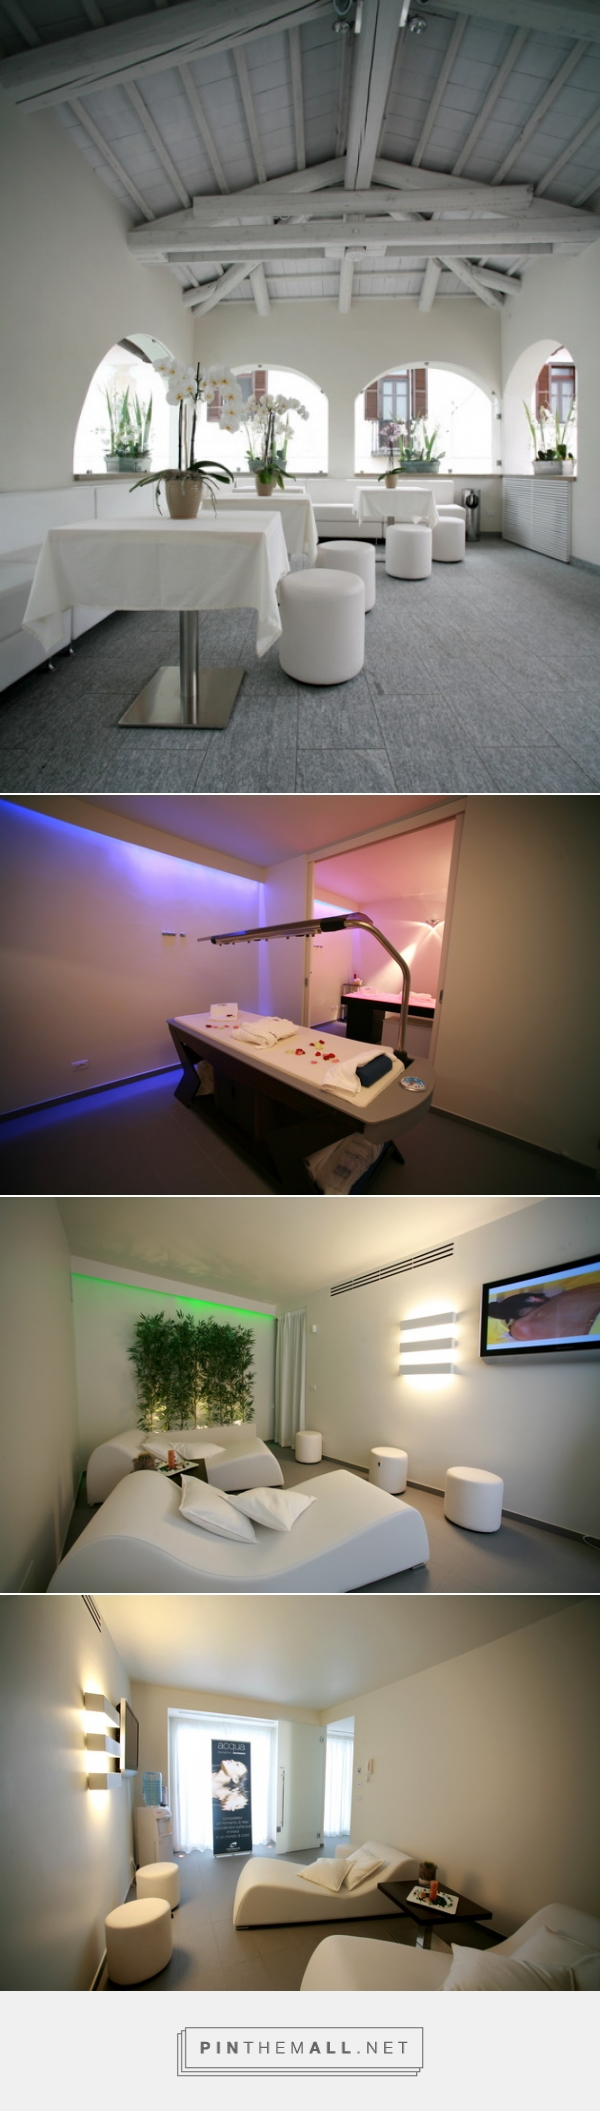 Beauty centro benessere realized by afa arredamenti for Arredamenti centri benessere spa